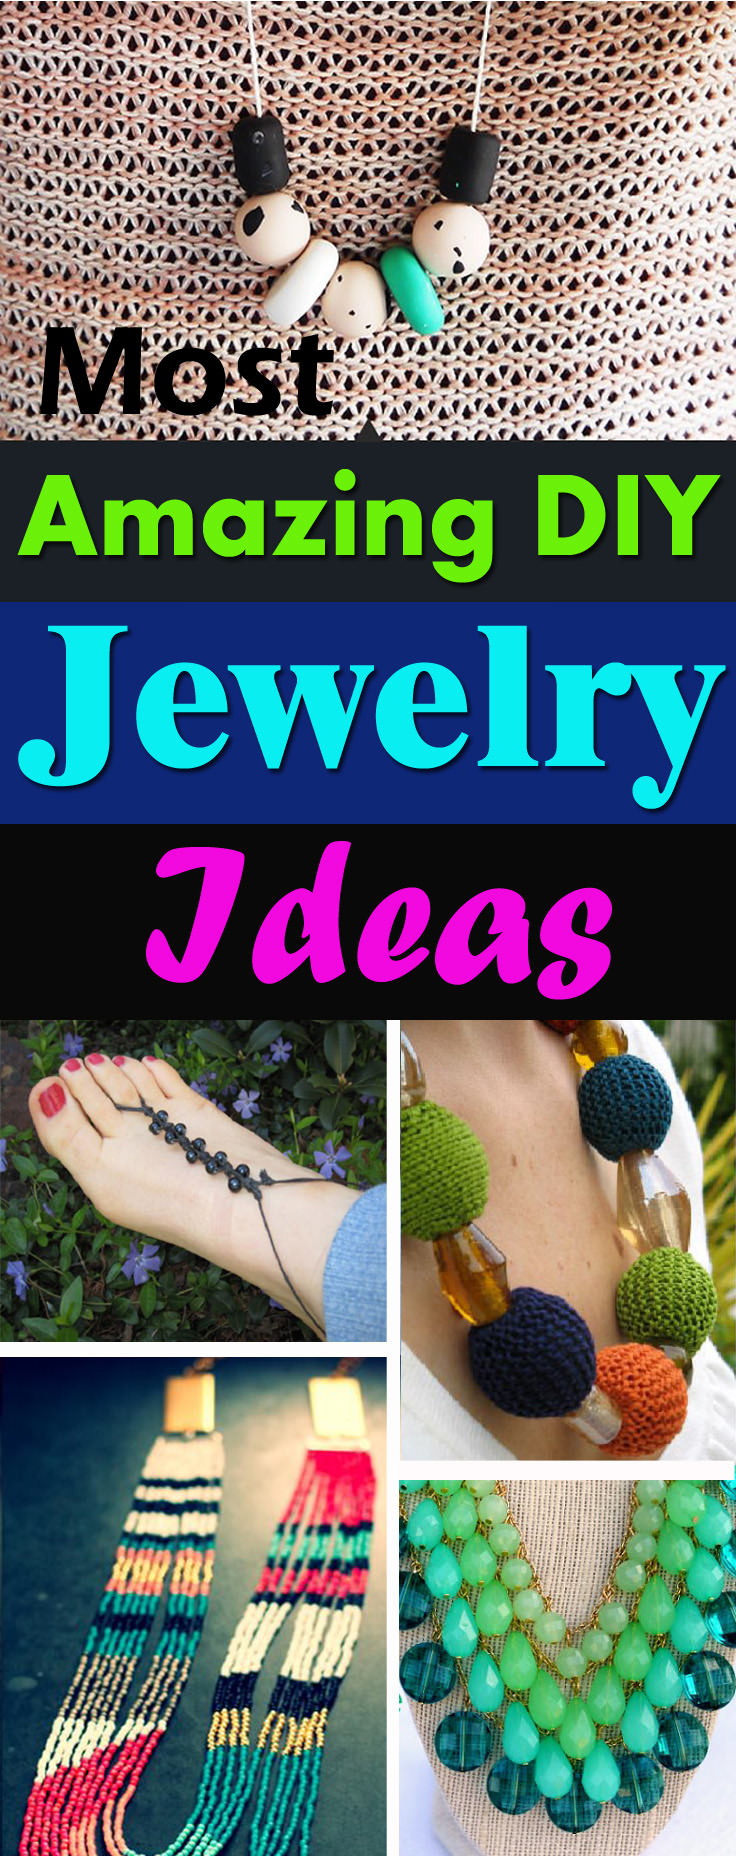 Want to make your own jewelry? Must look at these 40 amazing DIY jewelry ideas with the step by step tutorial!